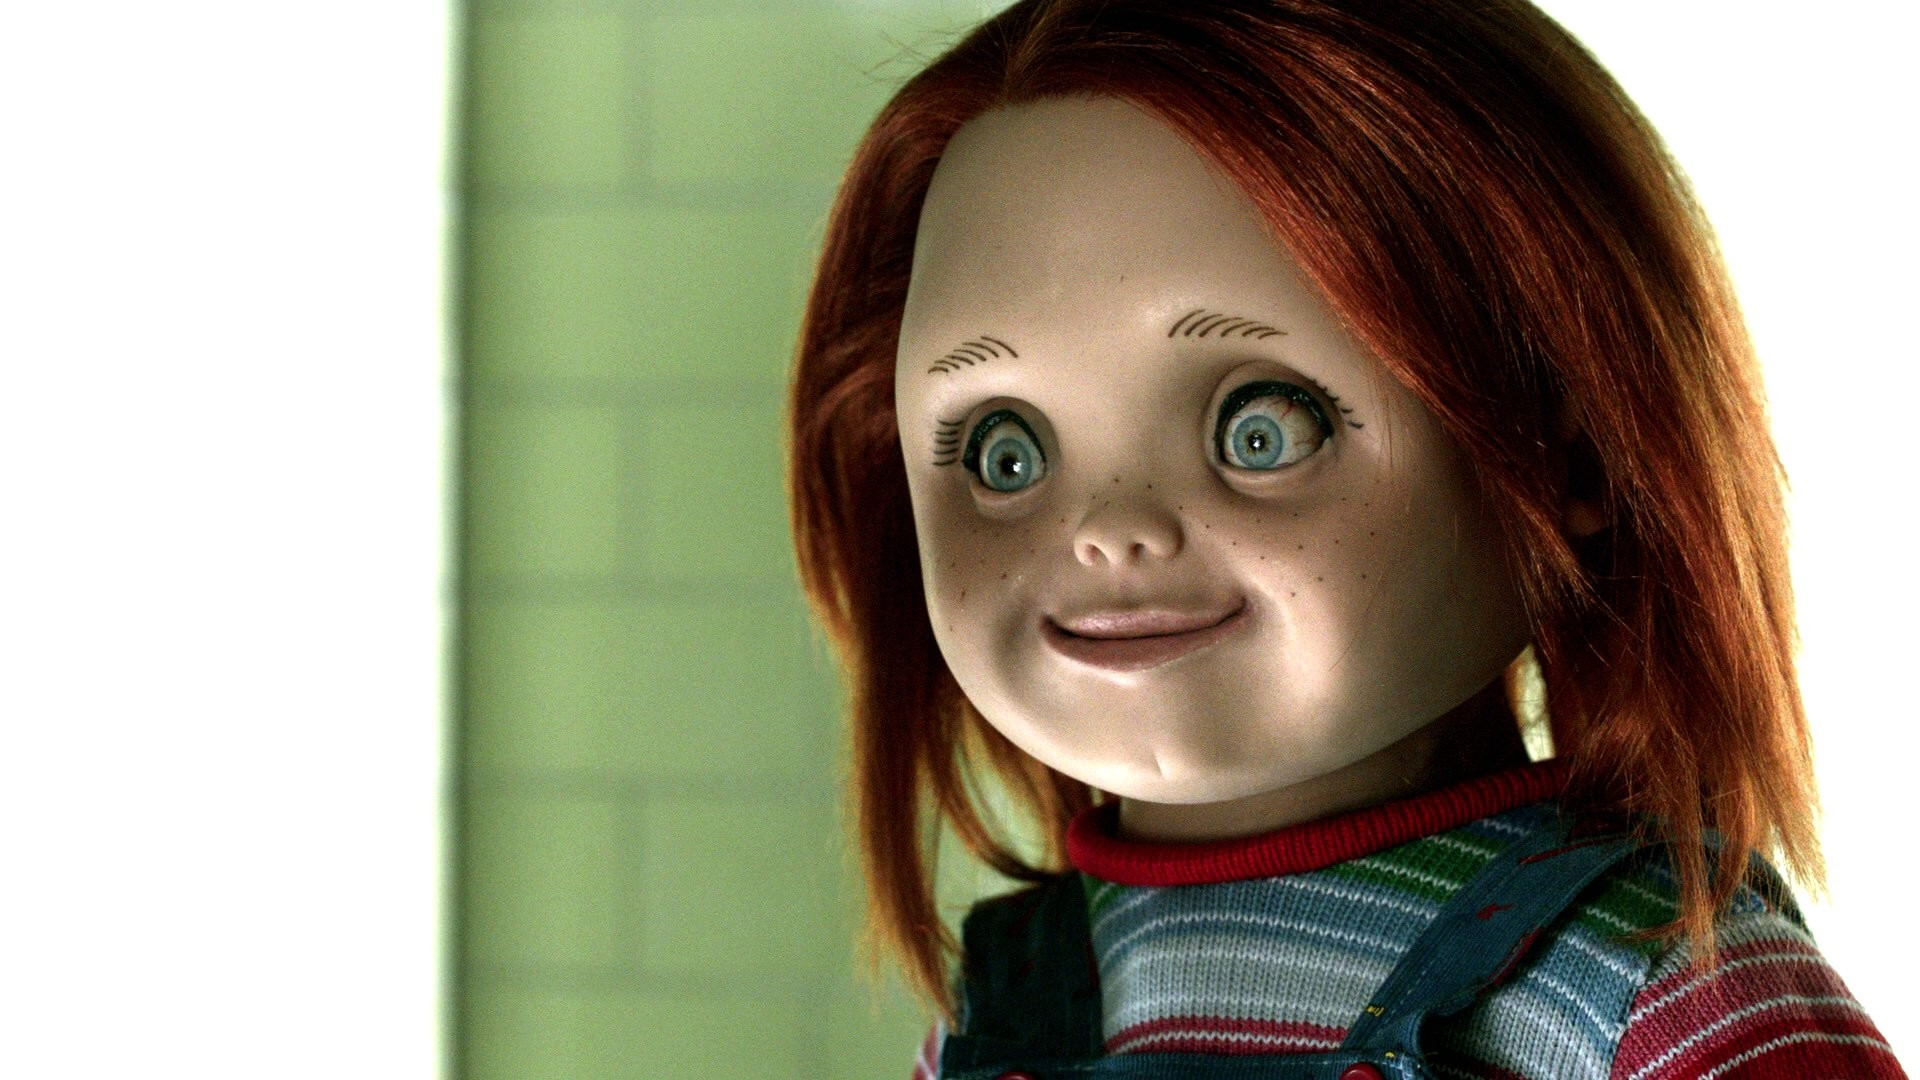 1920x1080 CHILDS PLAY chucky dark horror creepy scary (20) wallpaper |  |  235523 | WallpaperUP